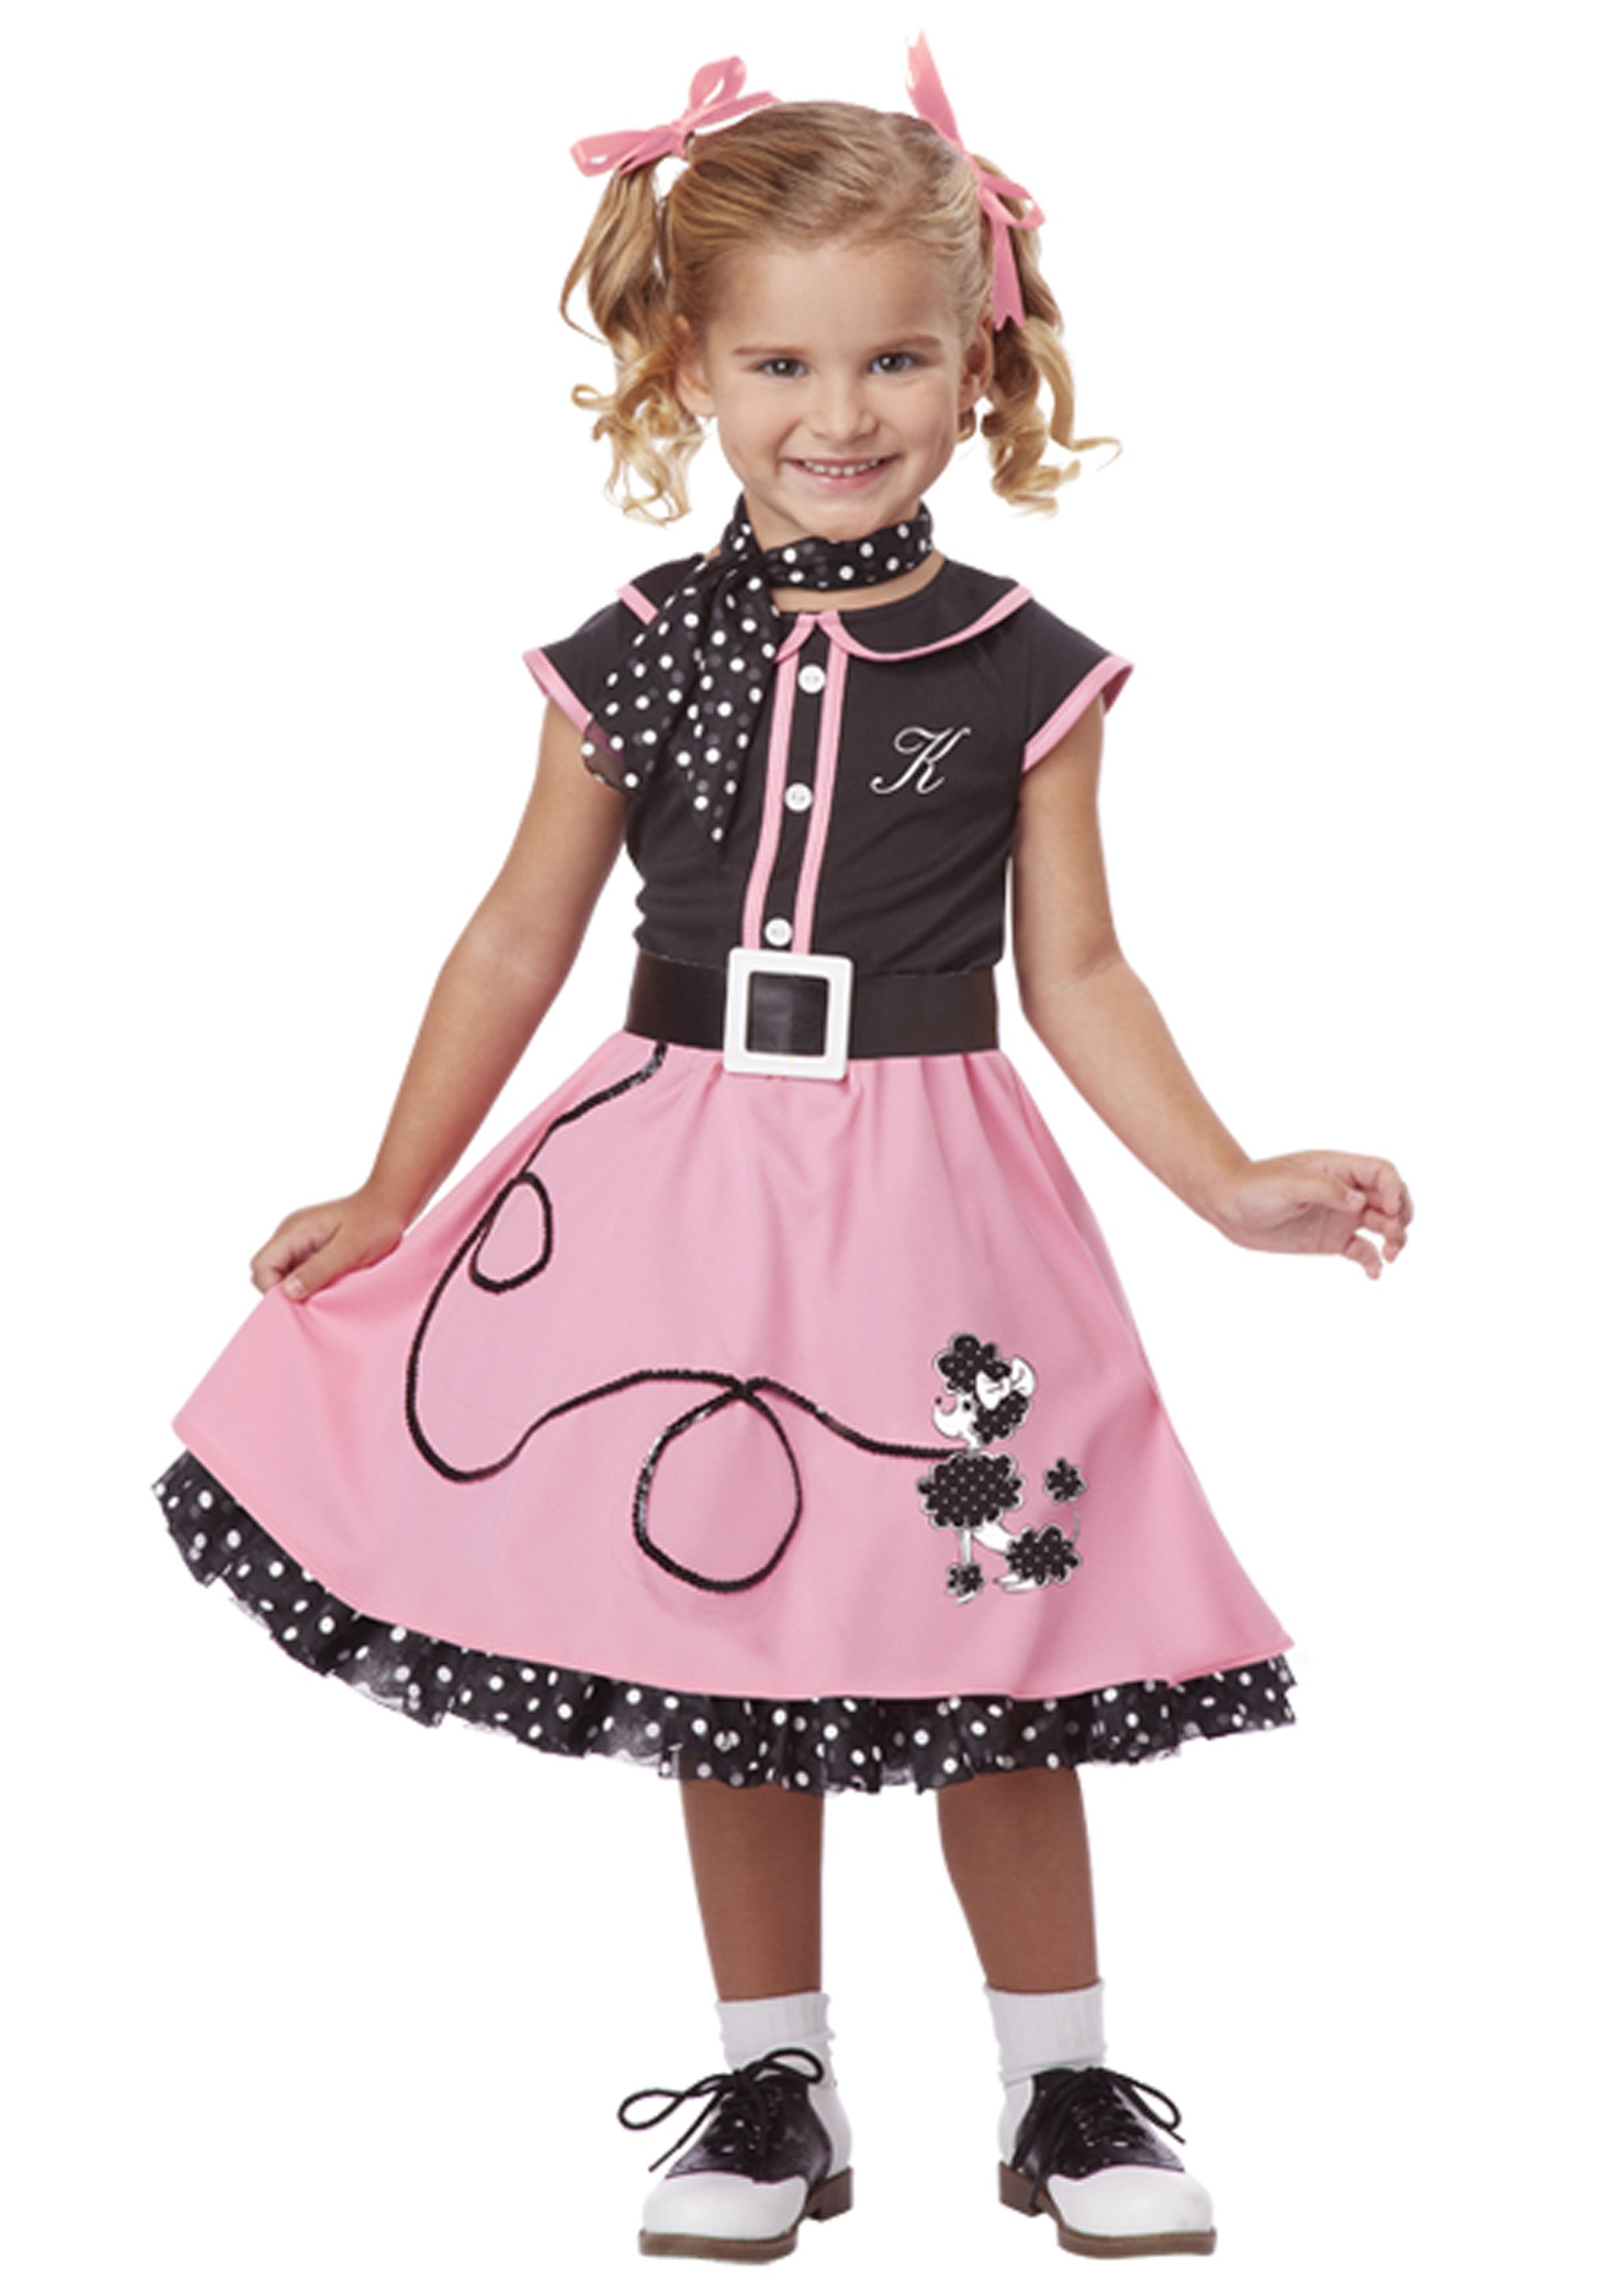 sc 1 st  Halloween Costumes & Toddler 50s Poodle Cutie Costume